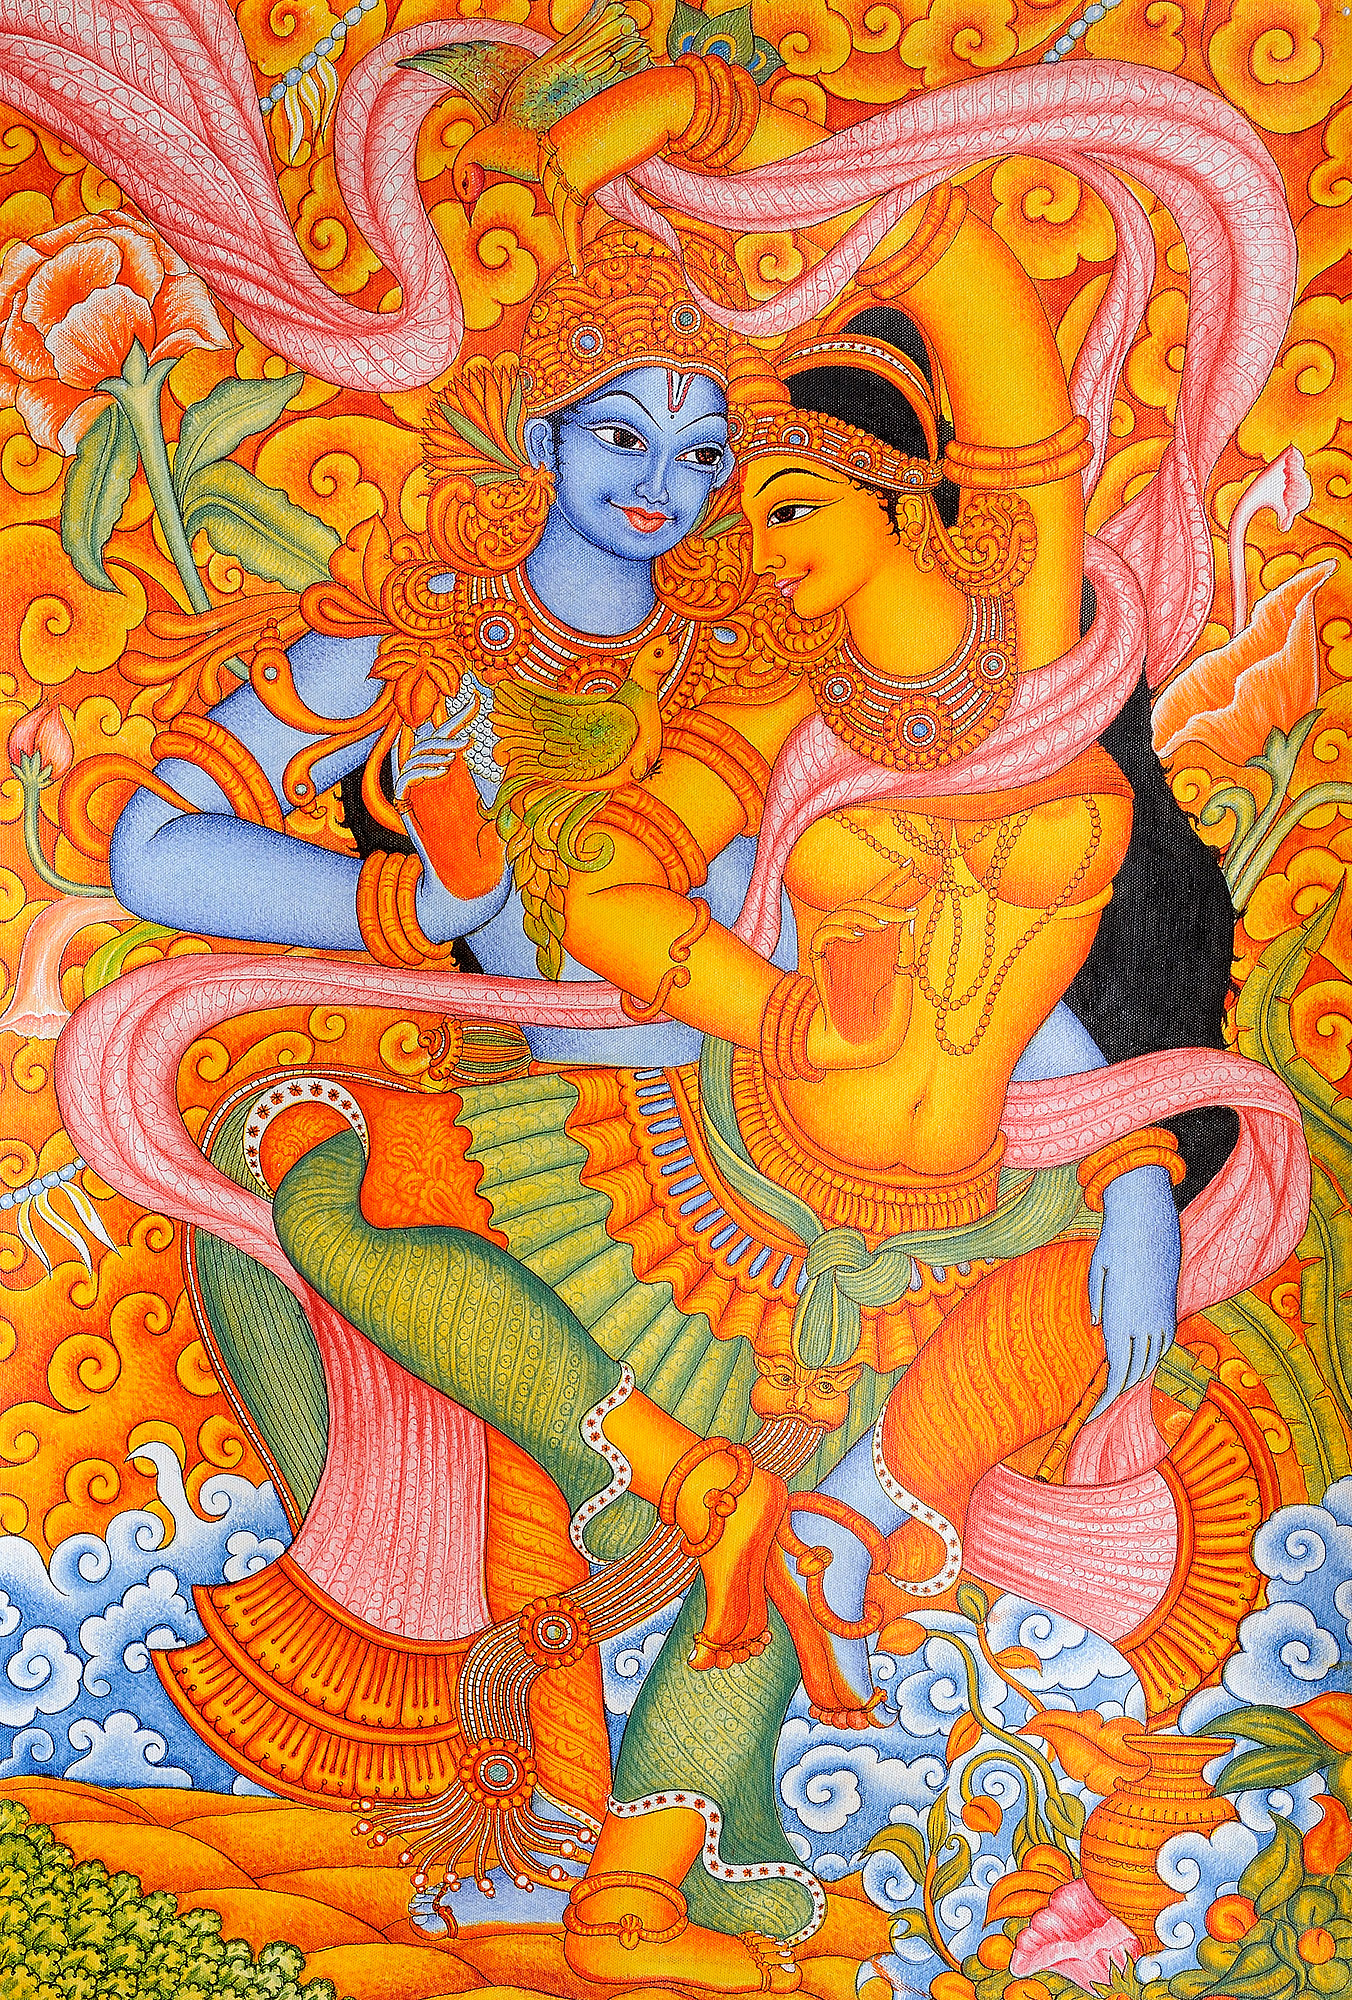 Kerala mural painting image 150 for Buy kerala mural paintings online